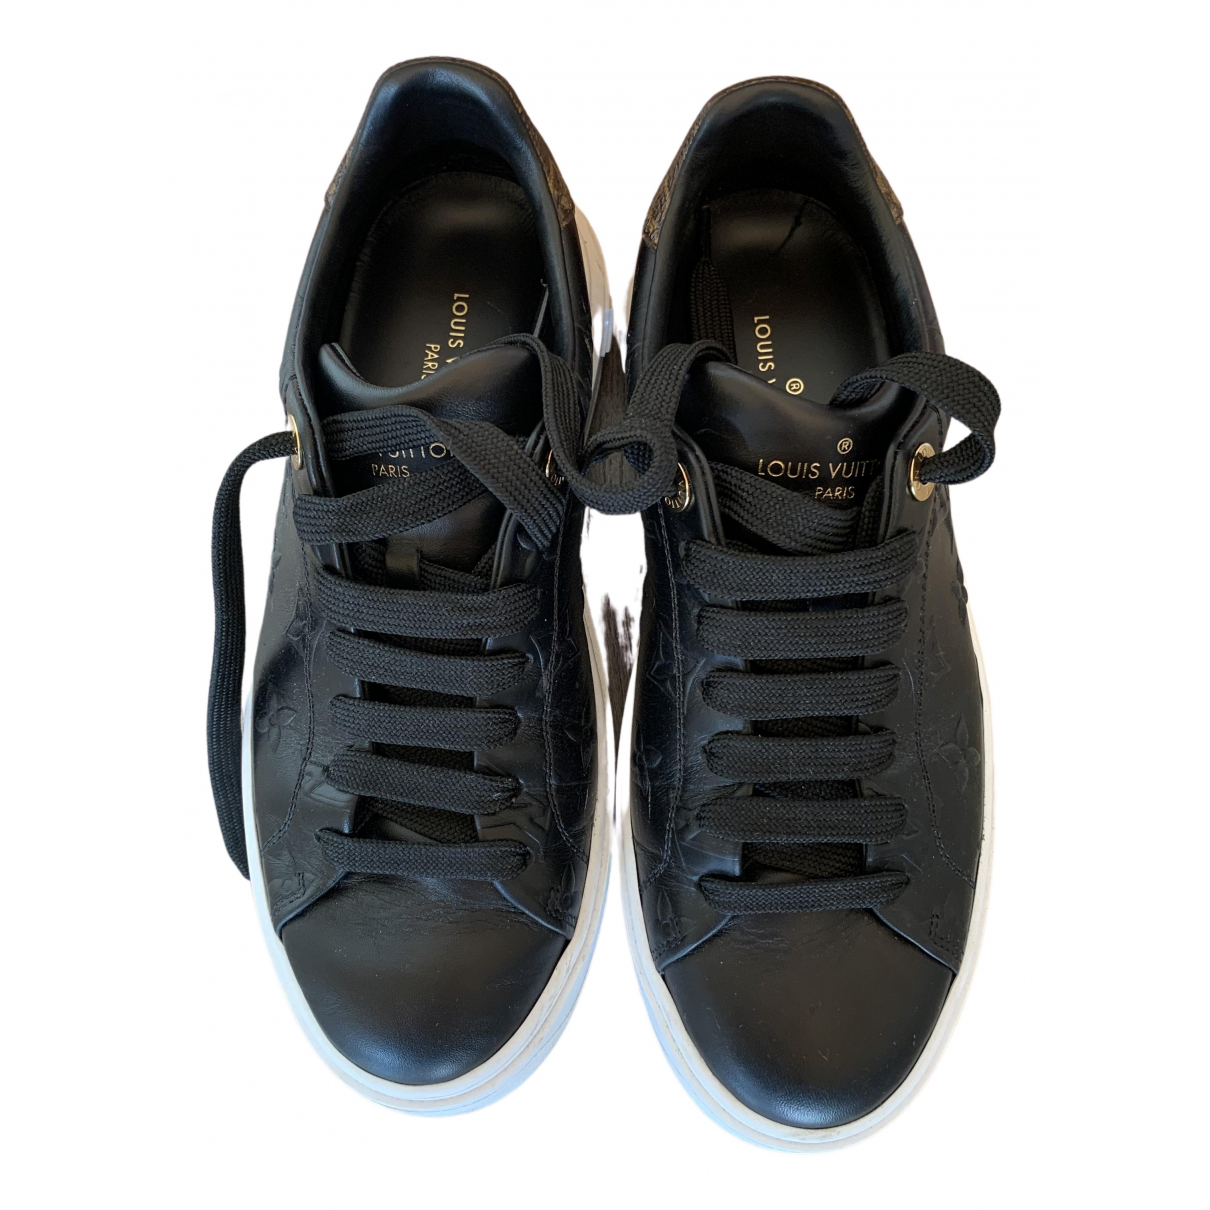 Louis Vuitton TimeOut Black Leather Trainers for Women 35.5 EU